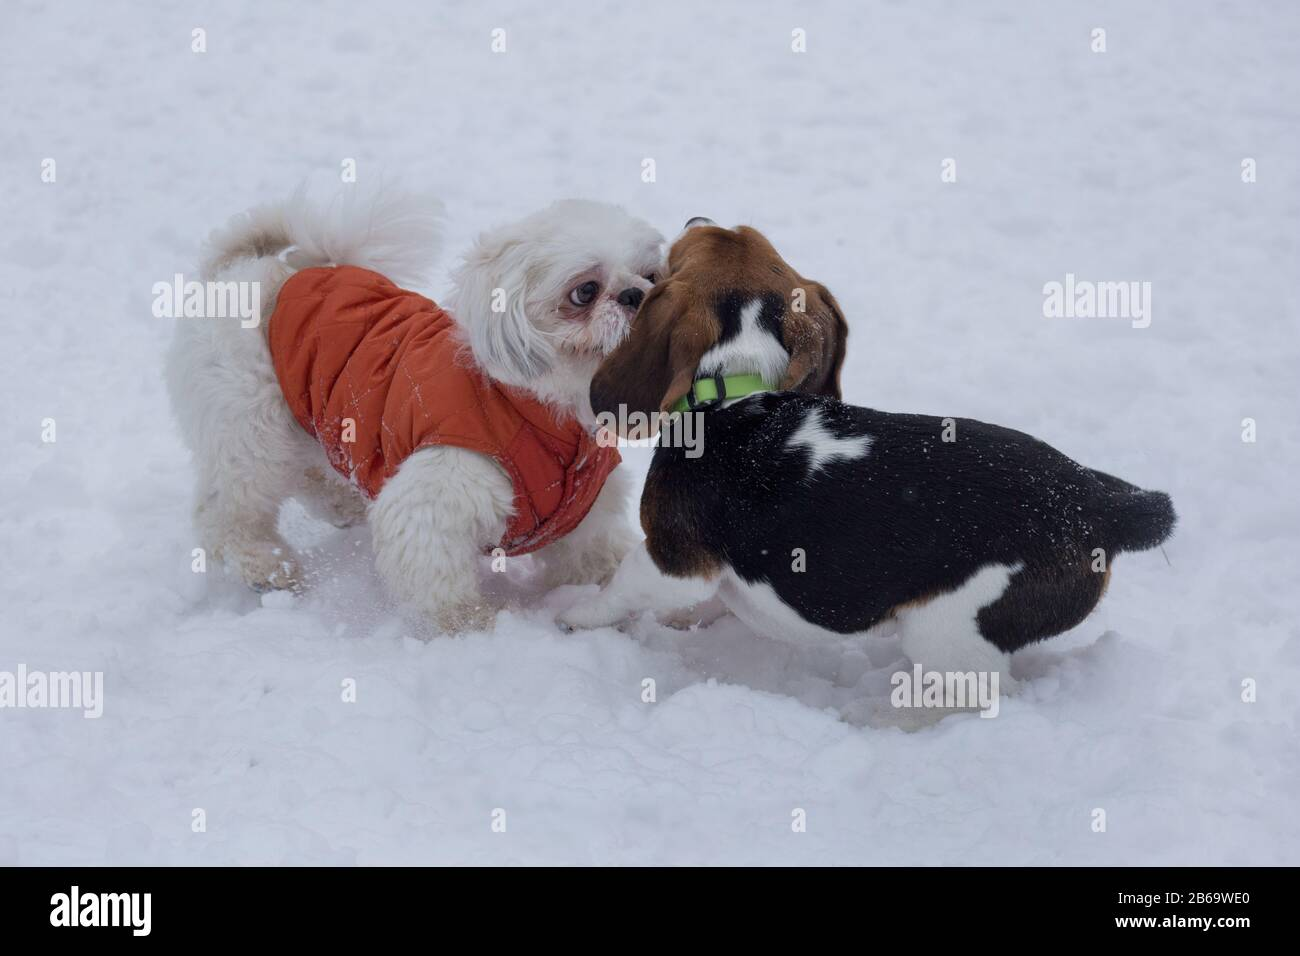 Shih Tzu Puppy And English Beagle Puppy Are Playing On A White Snow In The Winter Park Pet Animals Stock Photo Alamy